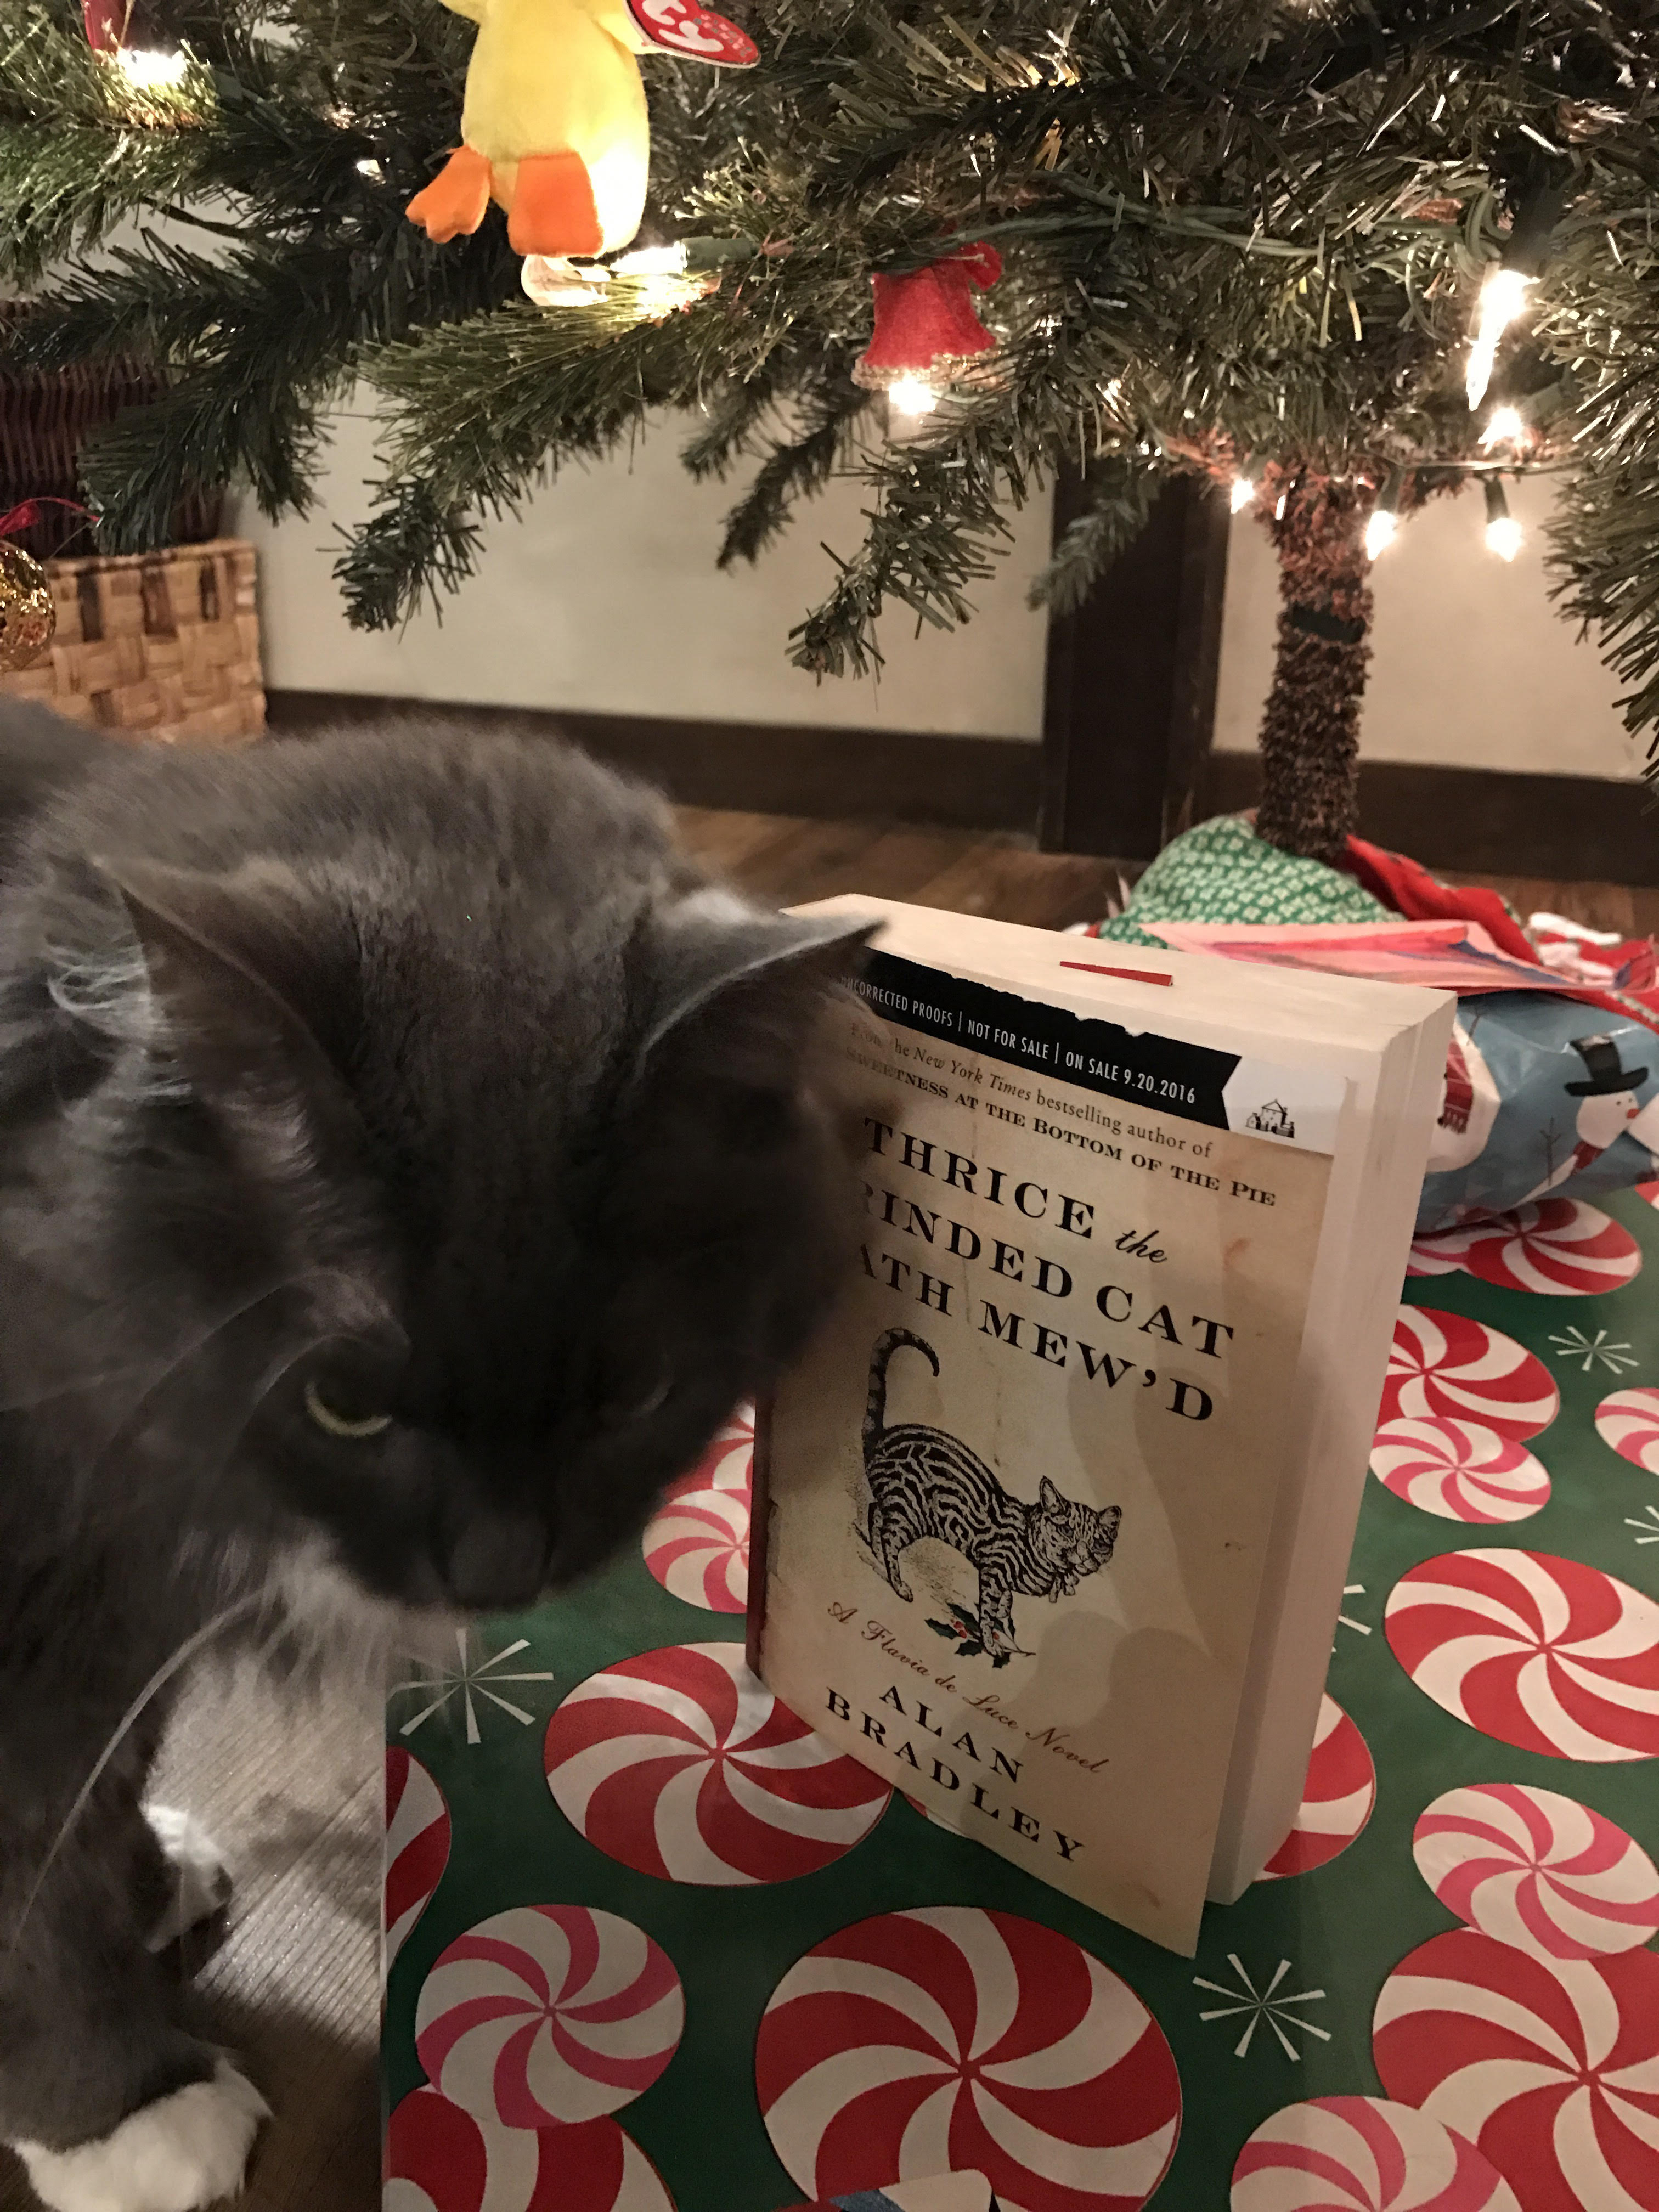 Book Review: Thrice the Brinded Cat Hath Mew'd by Alan Bradley